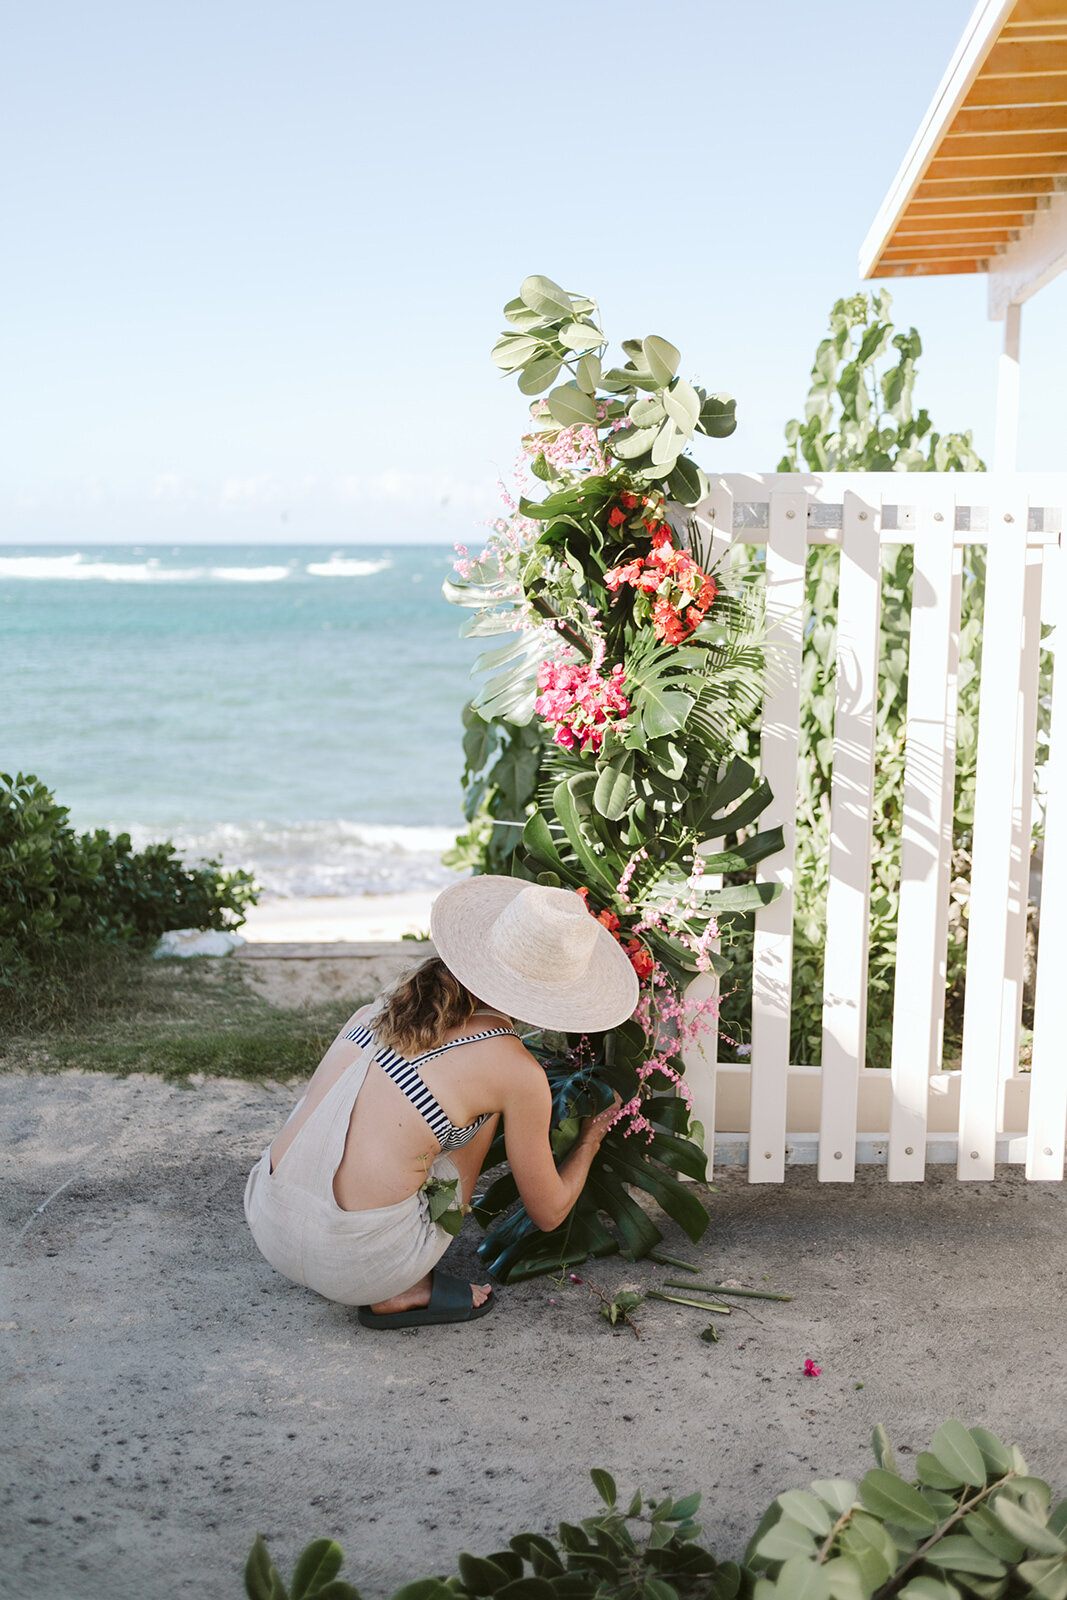 Mokuleia-North-Shore-Hawaii-Beach-House-Wedding-ceremony-arch-florals